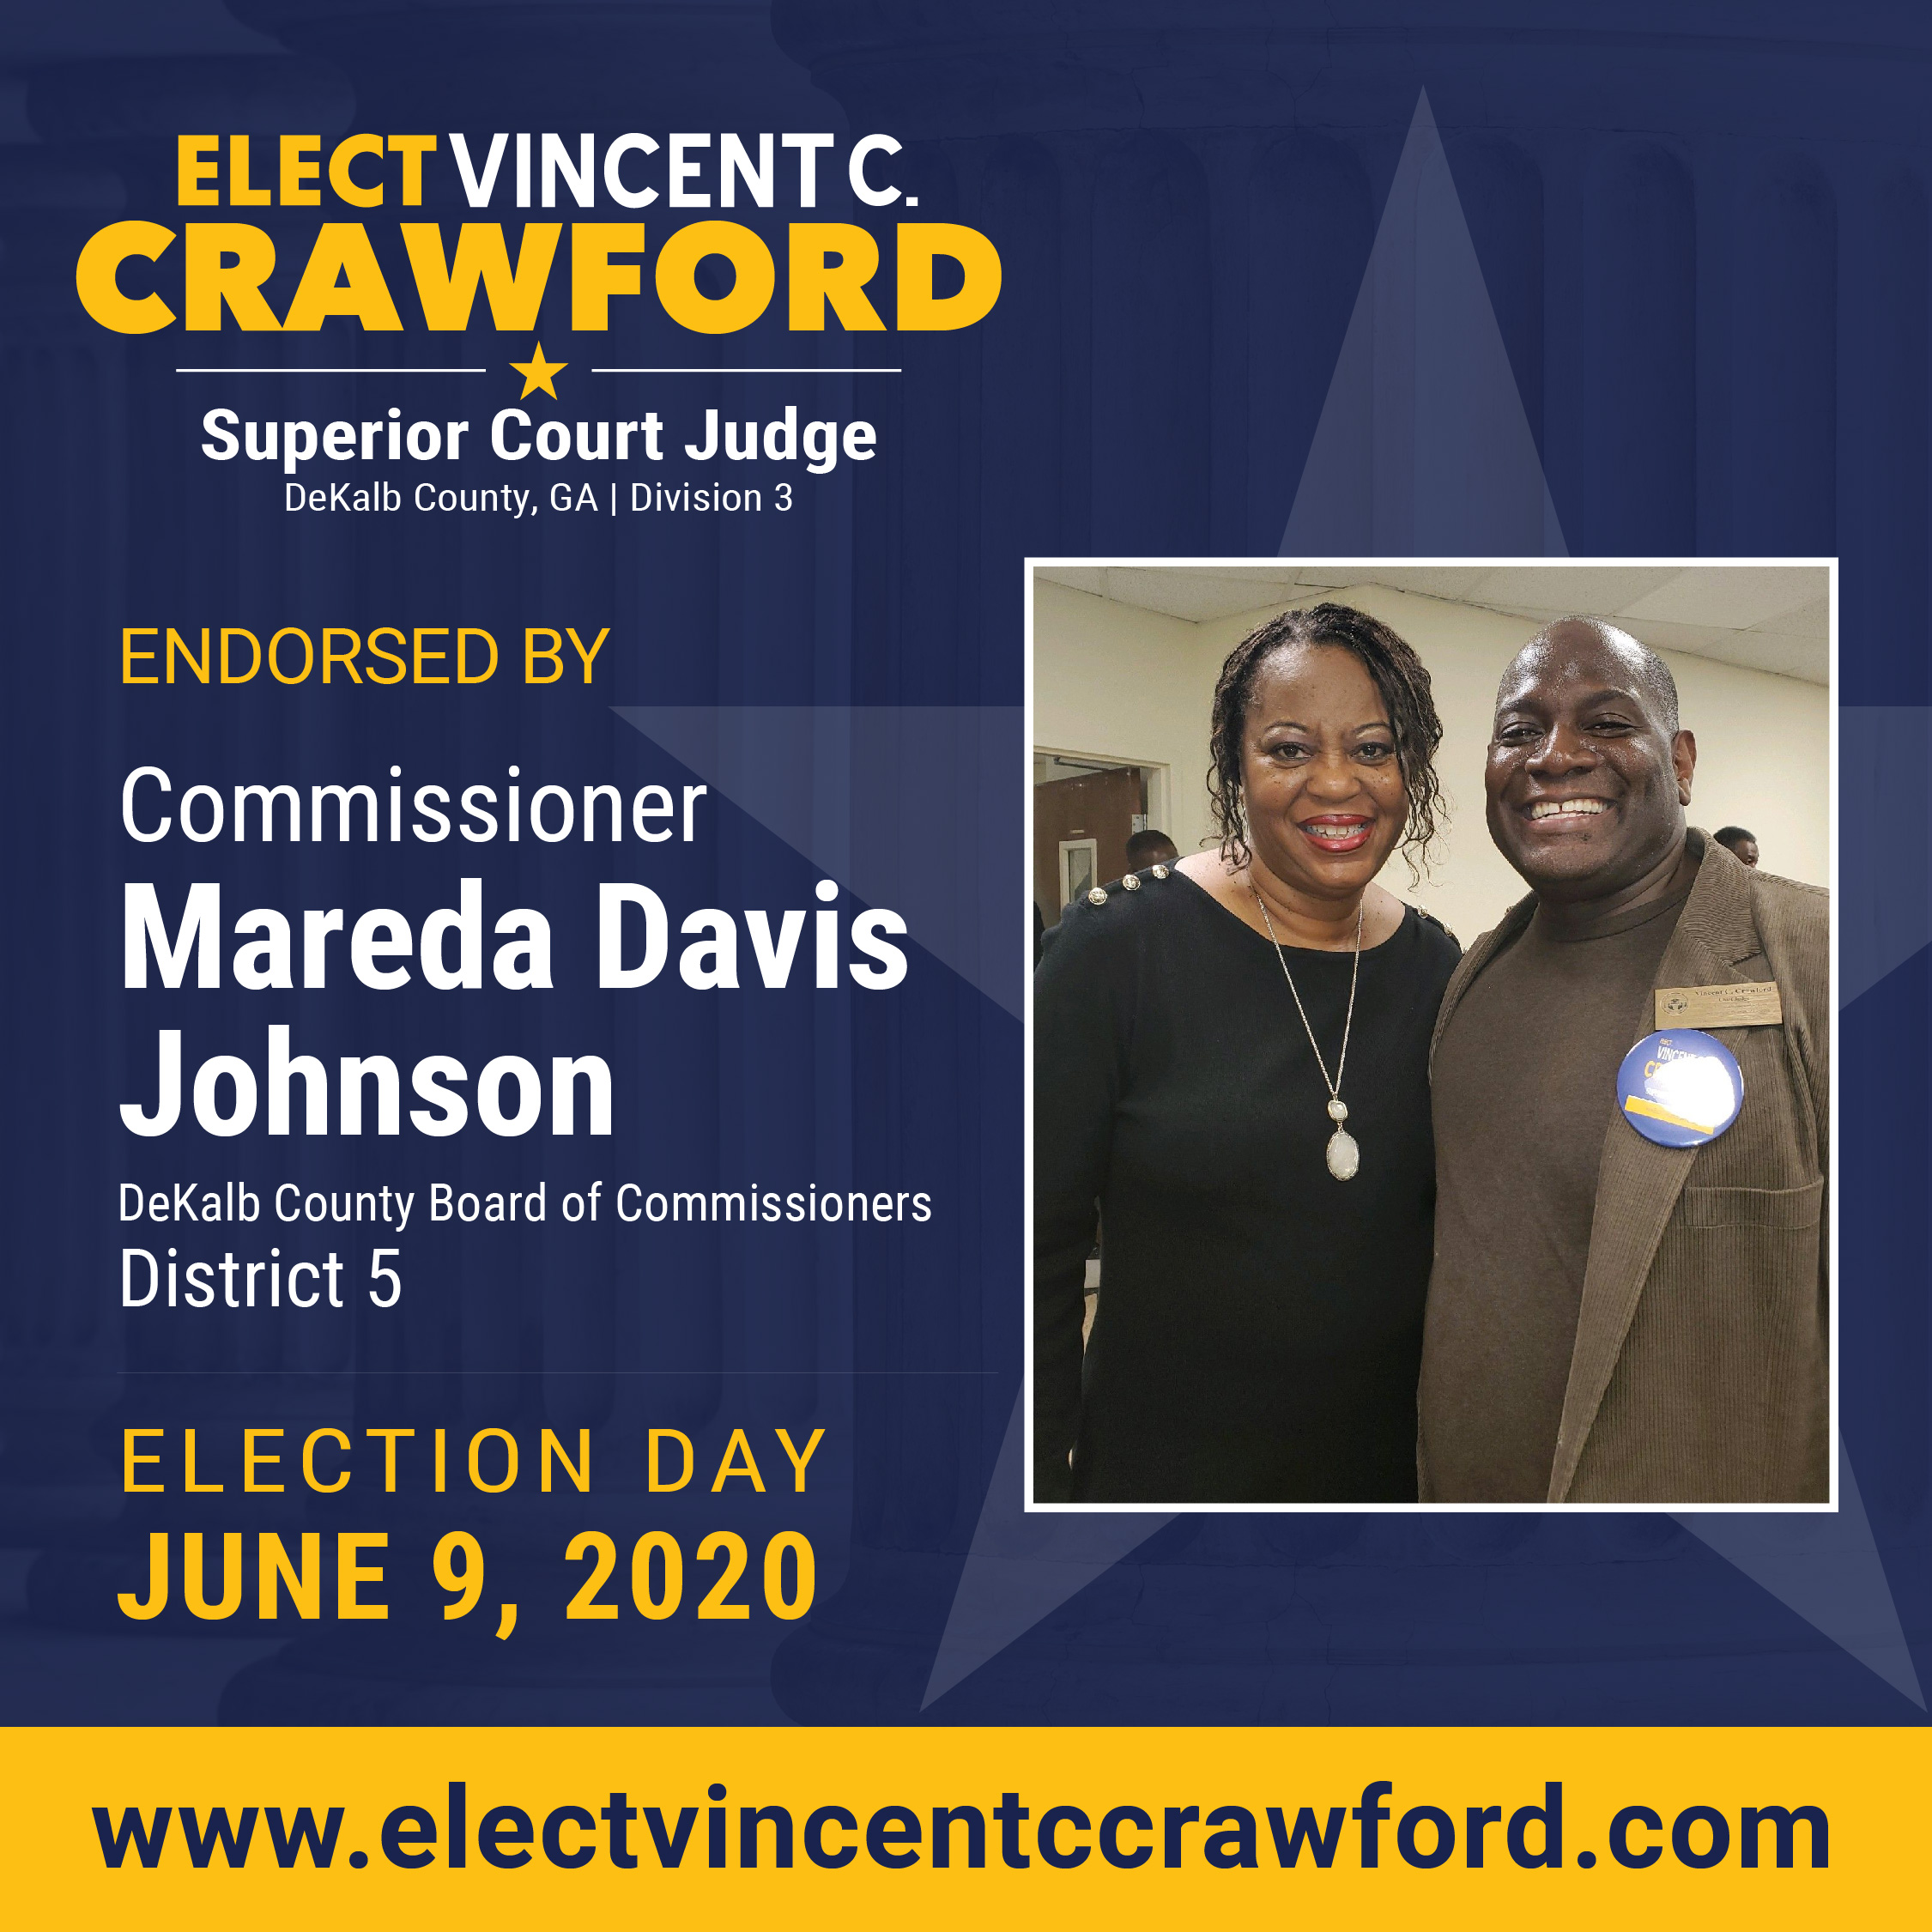 Judge Crawford receives endorsement from DeKalb County Commissioner Mareda Davis Johnson